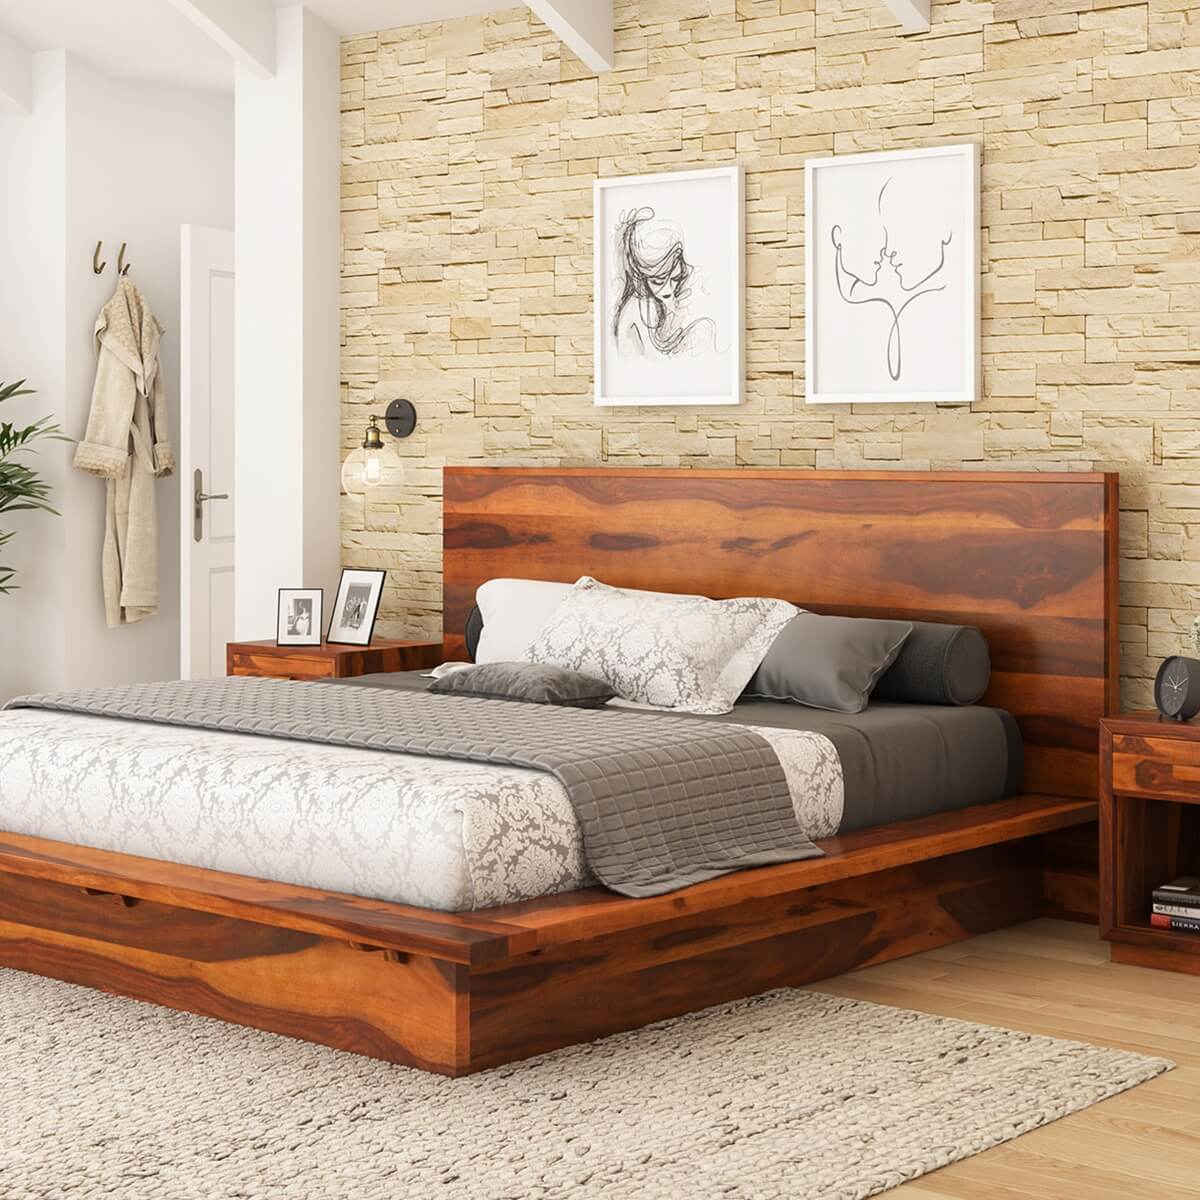 aversa queen pedestal flanigan bed storage article strategist affordable best and raymour frames